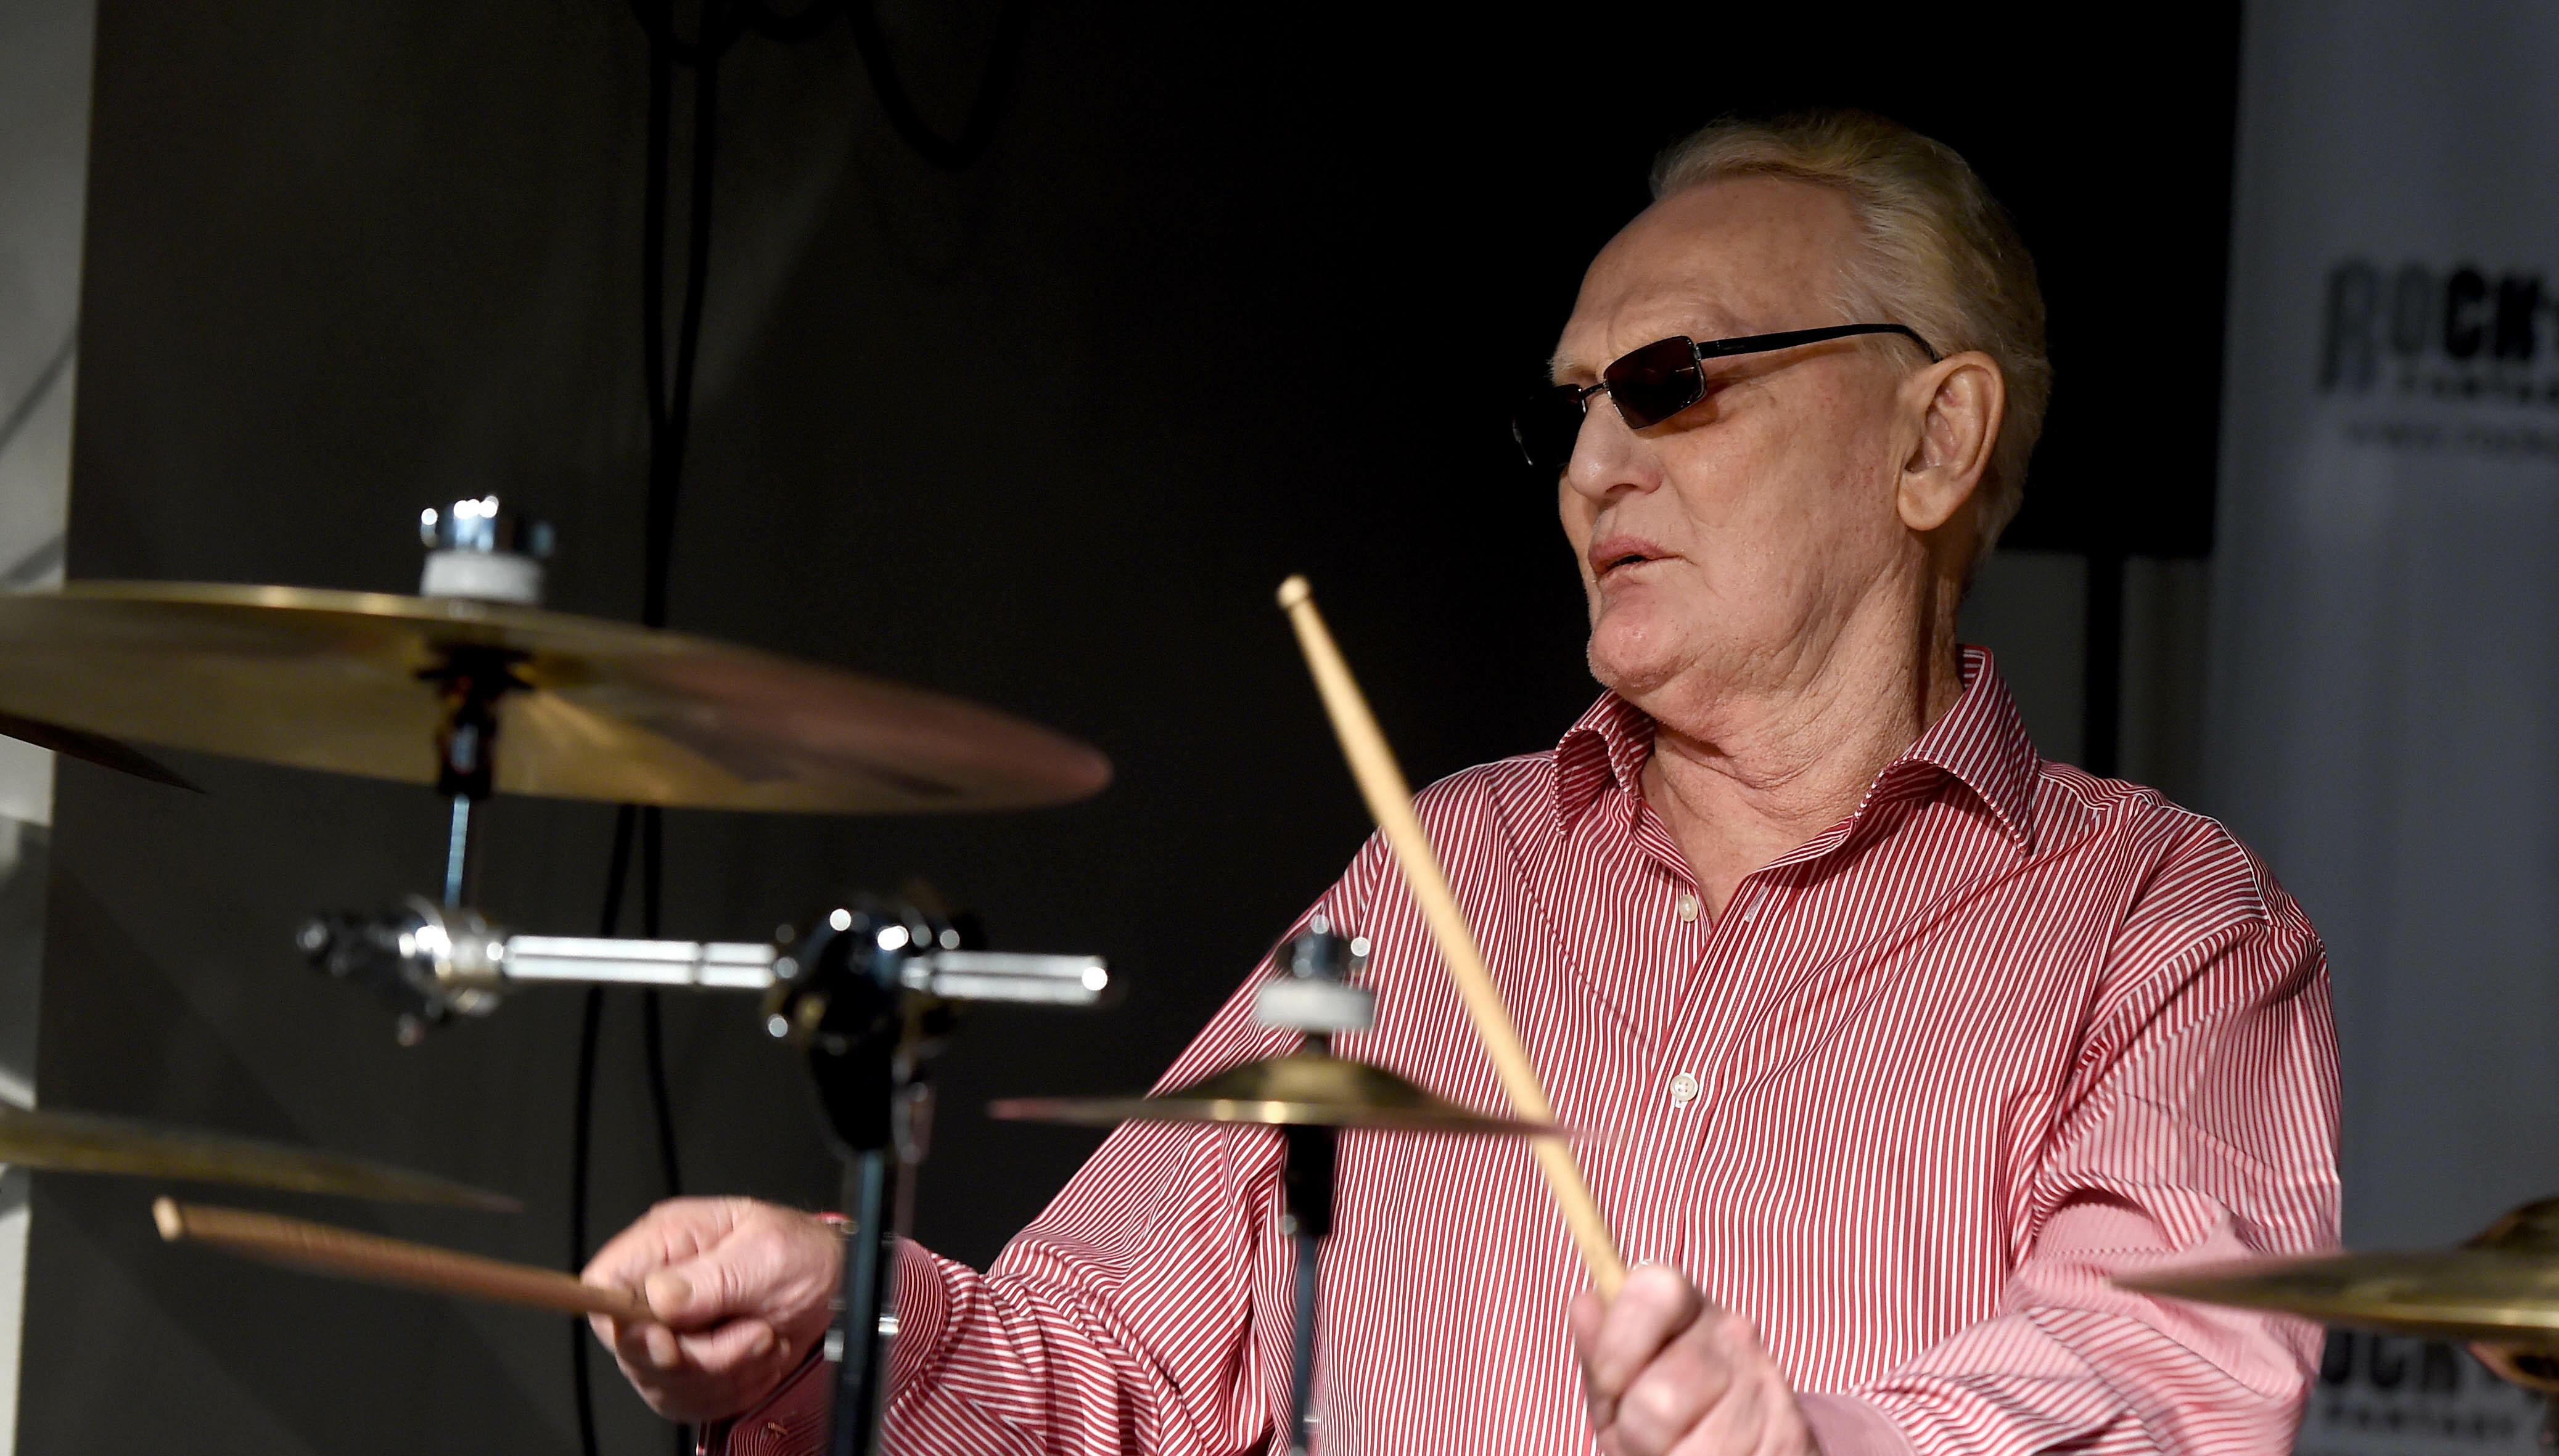 """Ginger Baker """"Holding His Own"""" Amid Health Crisis, Family Says"""